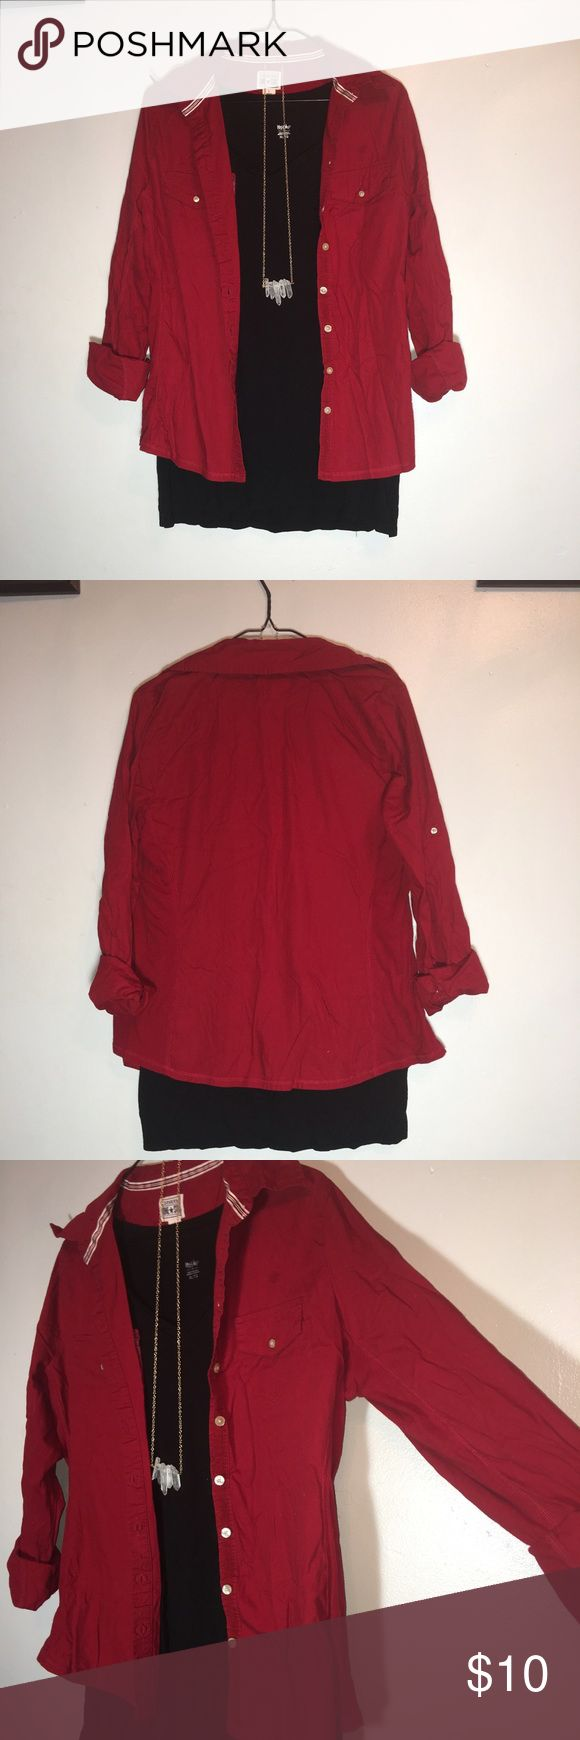 Converse Red Button Down Top, with roll up sleeves This red bottom down top from converse really pops! It is button down, collared, has two front pockets and has roll up sleeves! * black shirt and necklace not included Converse Tops Button Down Shirts